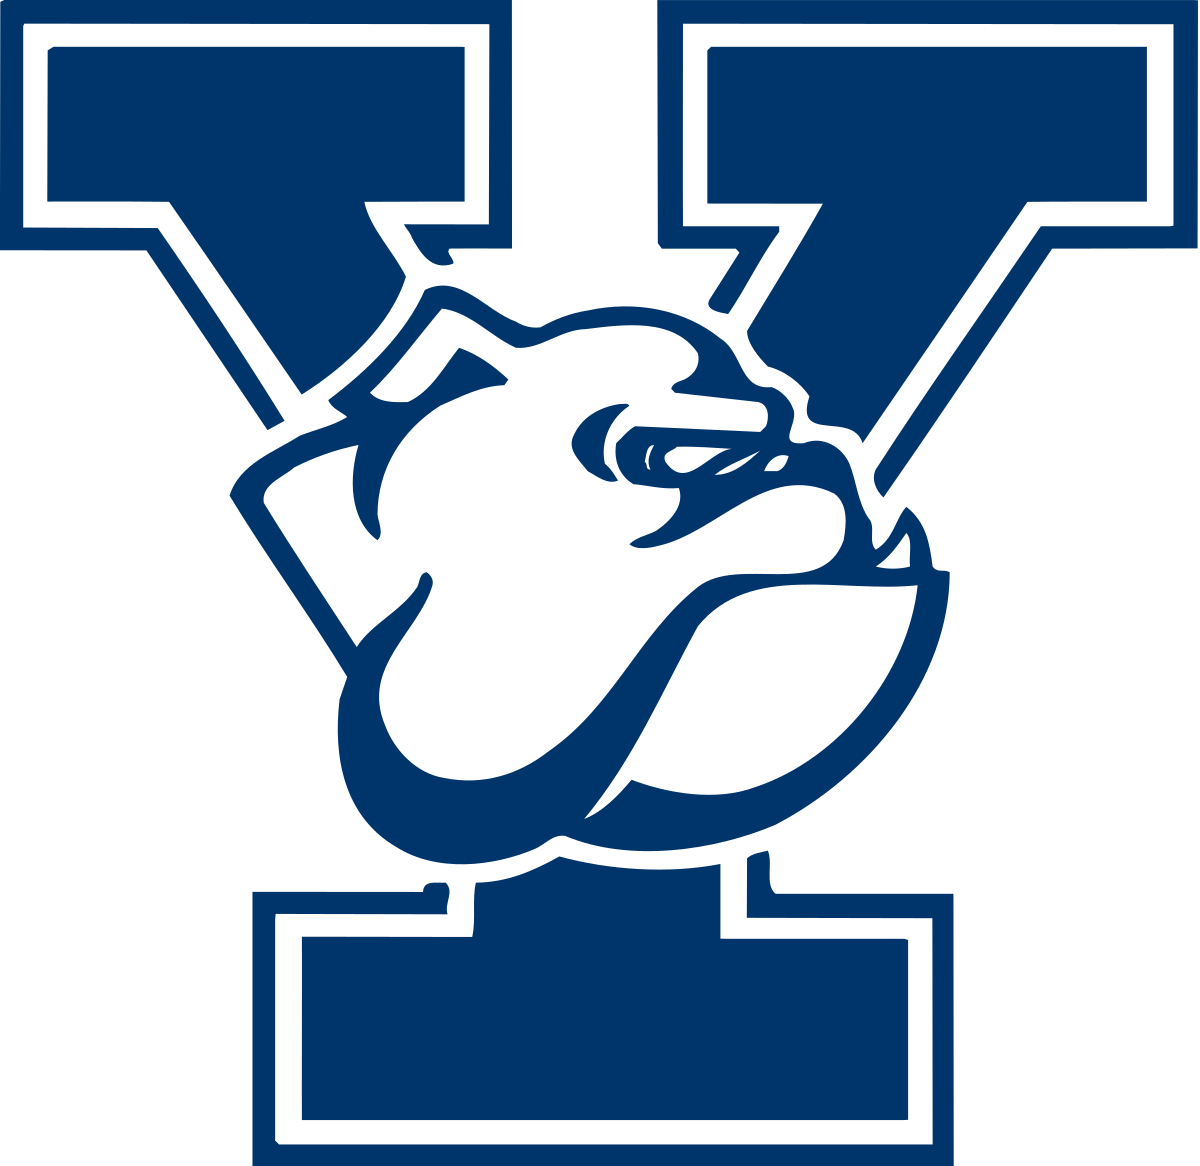 Bulldog mascot clipart with basketball graphic free library Yale Bulldogs - Wikipedia graphic free library